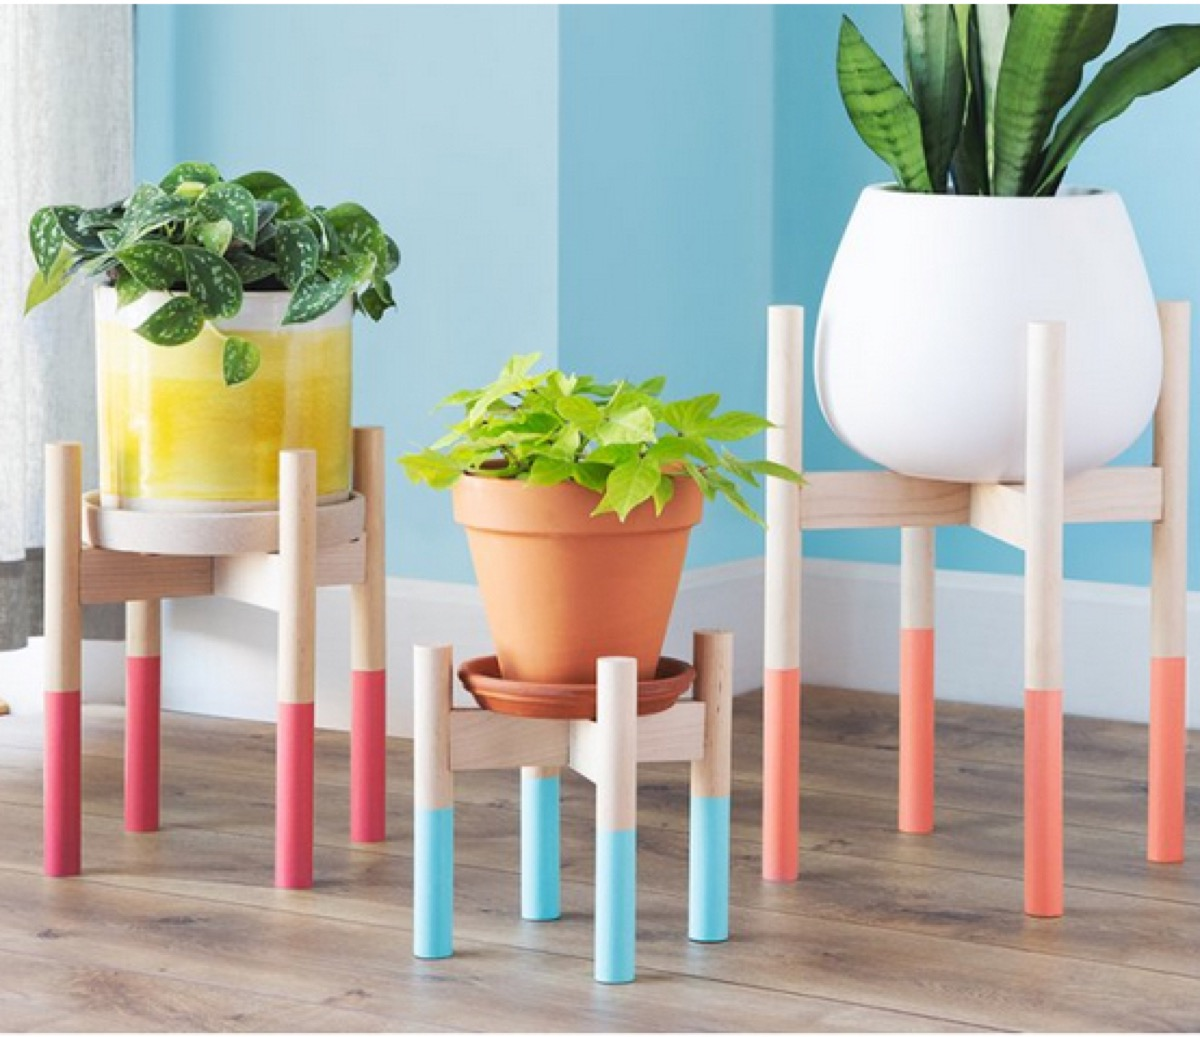 three potted plants on wooden plant stands with colorful legs